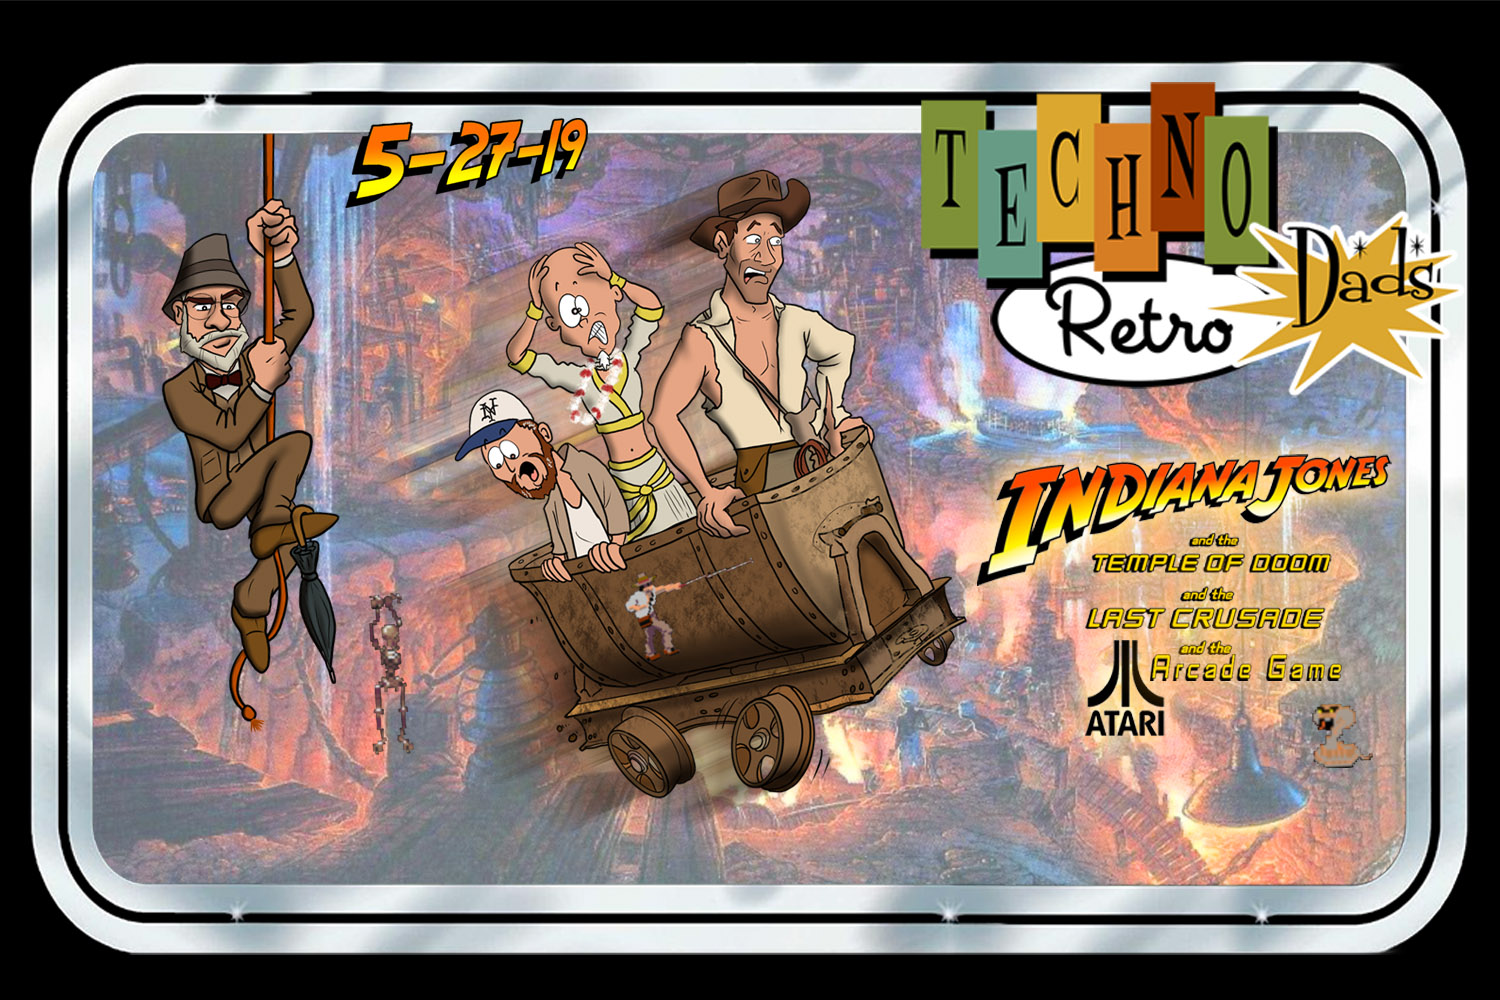 TechnoRetro Dads: Last Crusade to the Temple of Doom